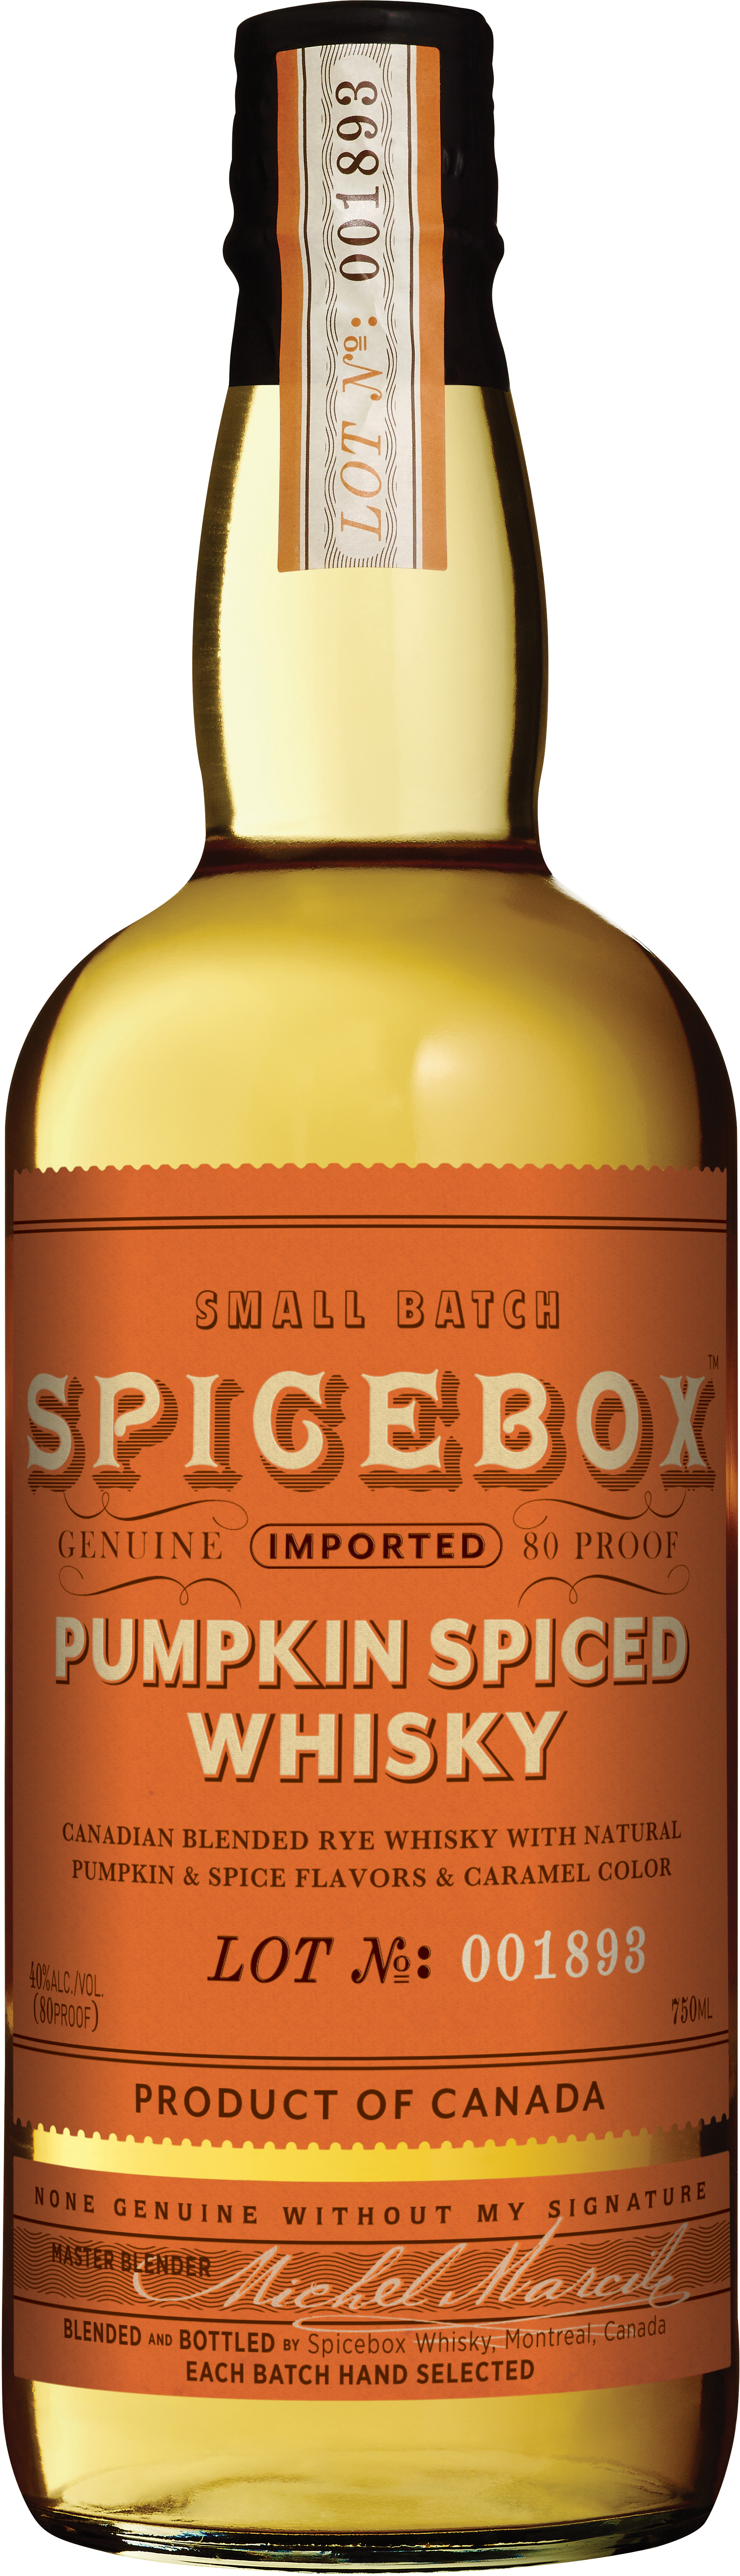 Spicebox Pumpkin_750ml_US